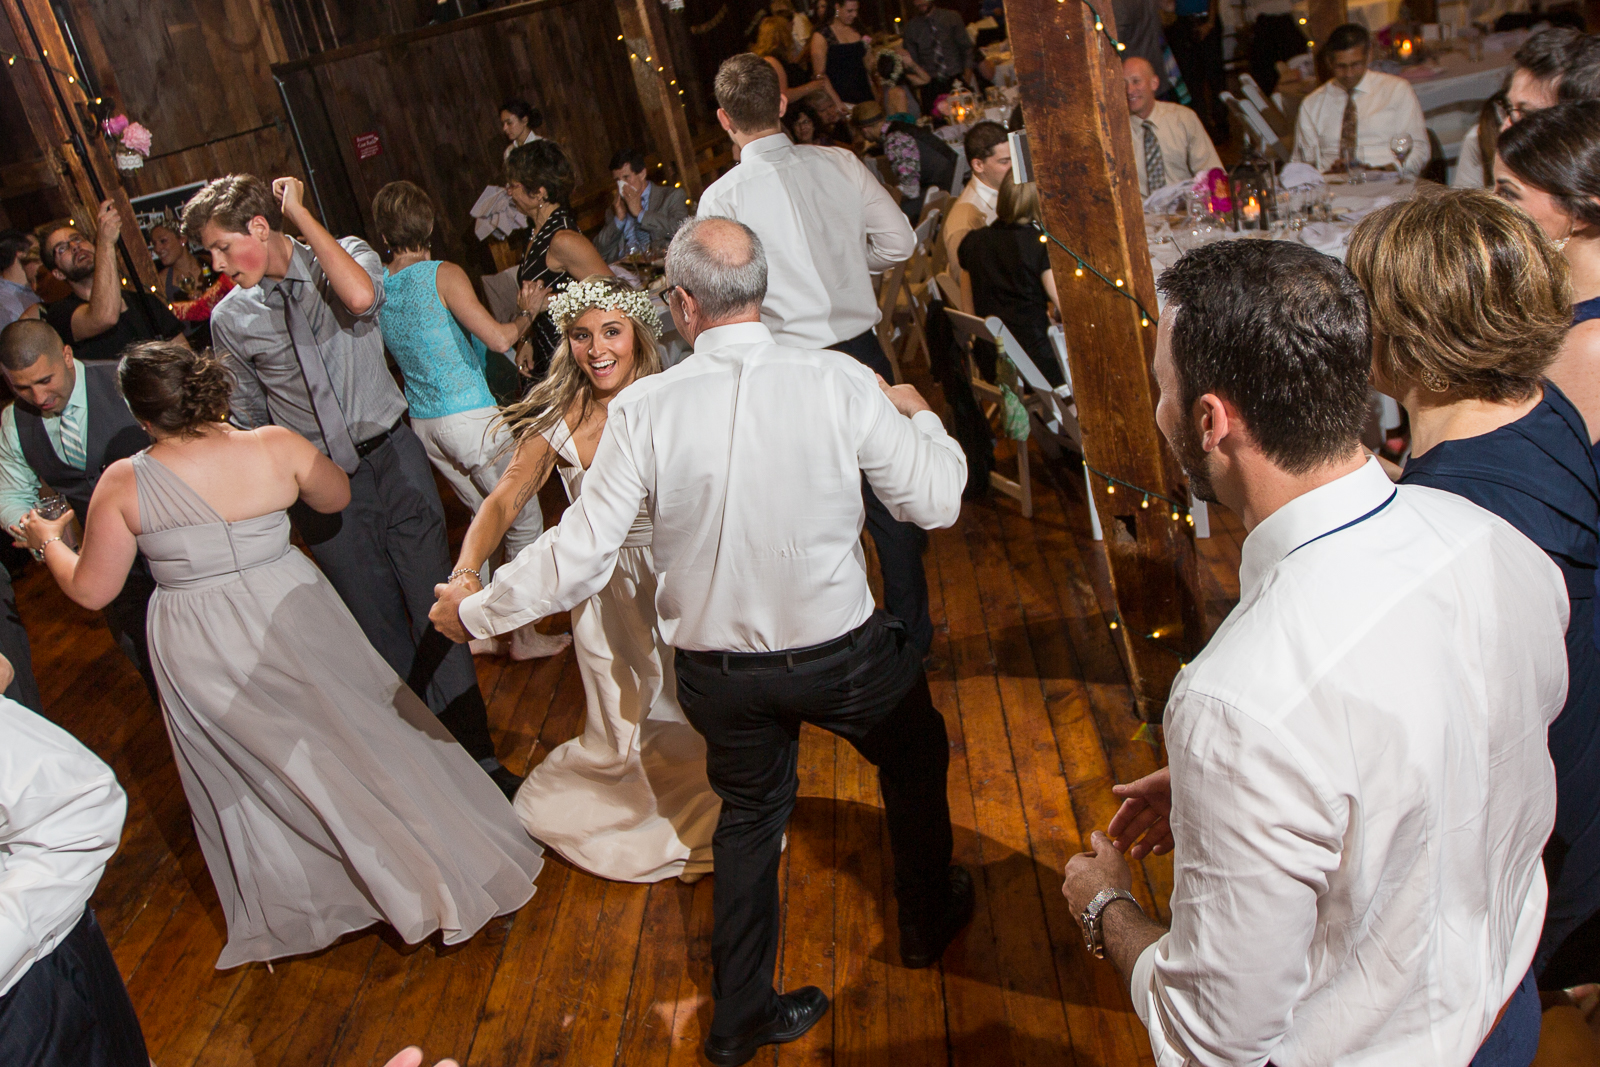 Four_Wings_Photography_Wedding_Red_Barn_at_Hampshire_College-54.jpg